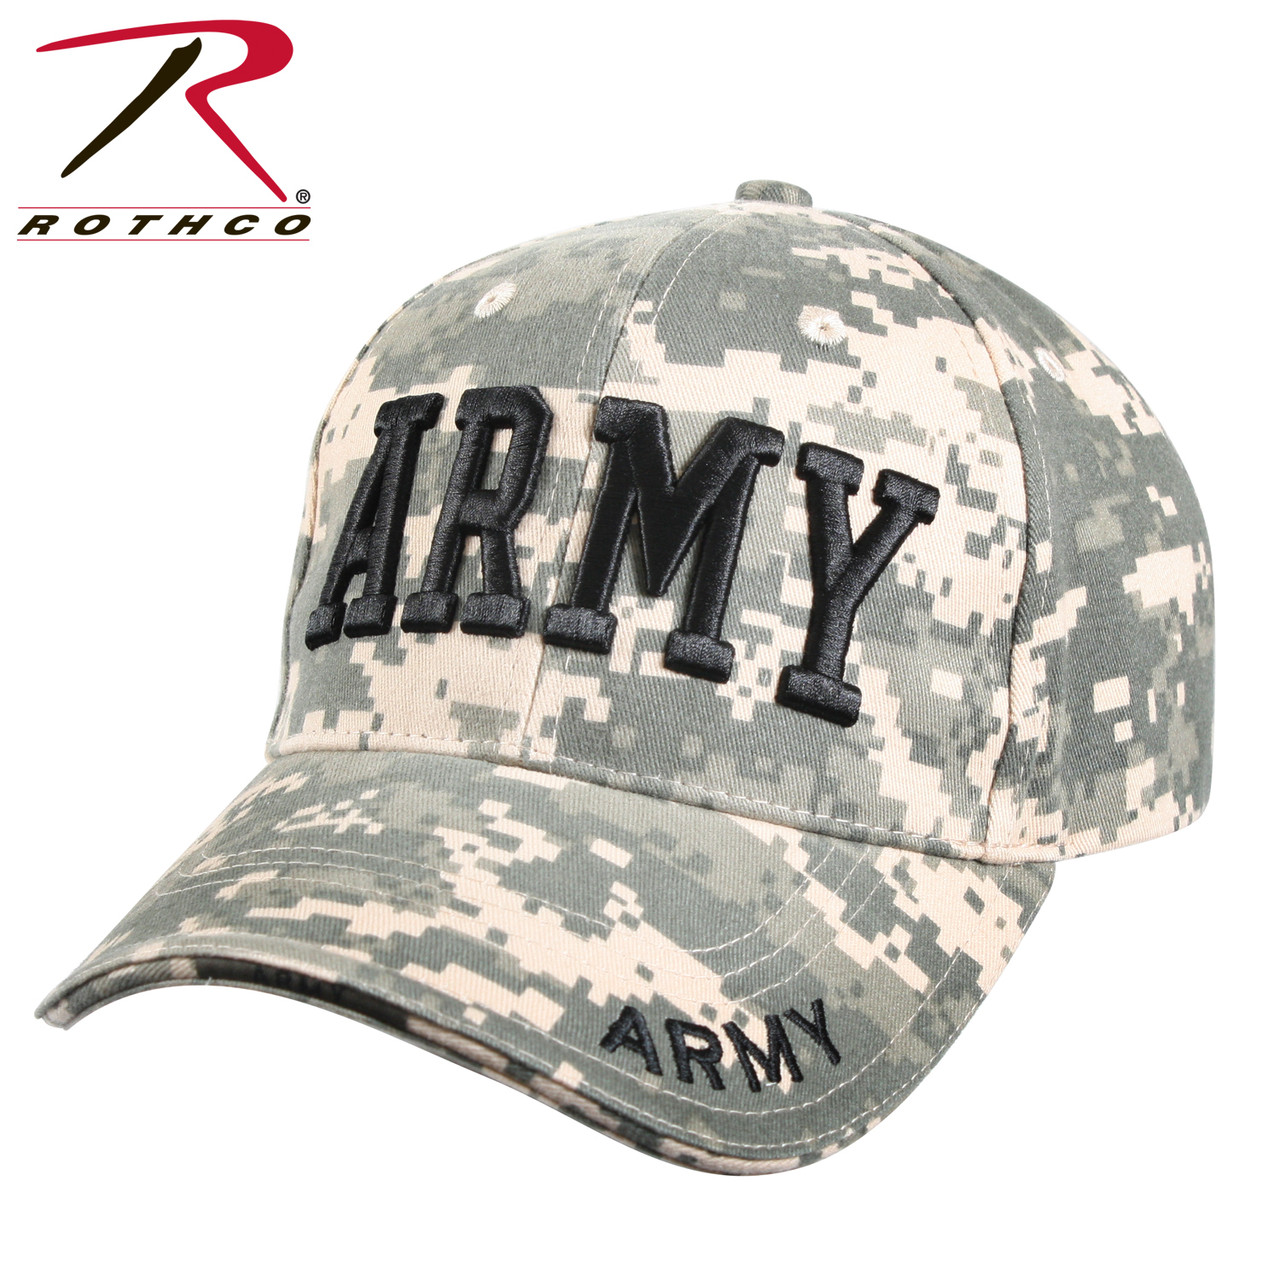 a85b527720cb5 Rothco Deluxe Army Cap Embroidered Insignia Low Profile (Item #9488) -ACU  Digital Camo